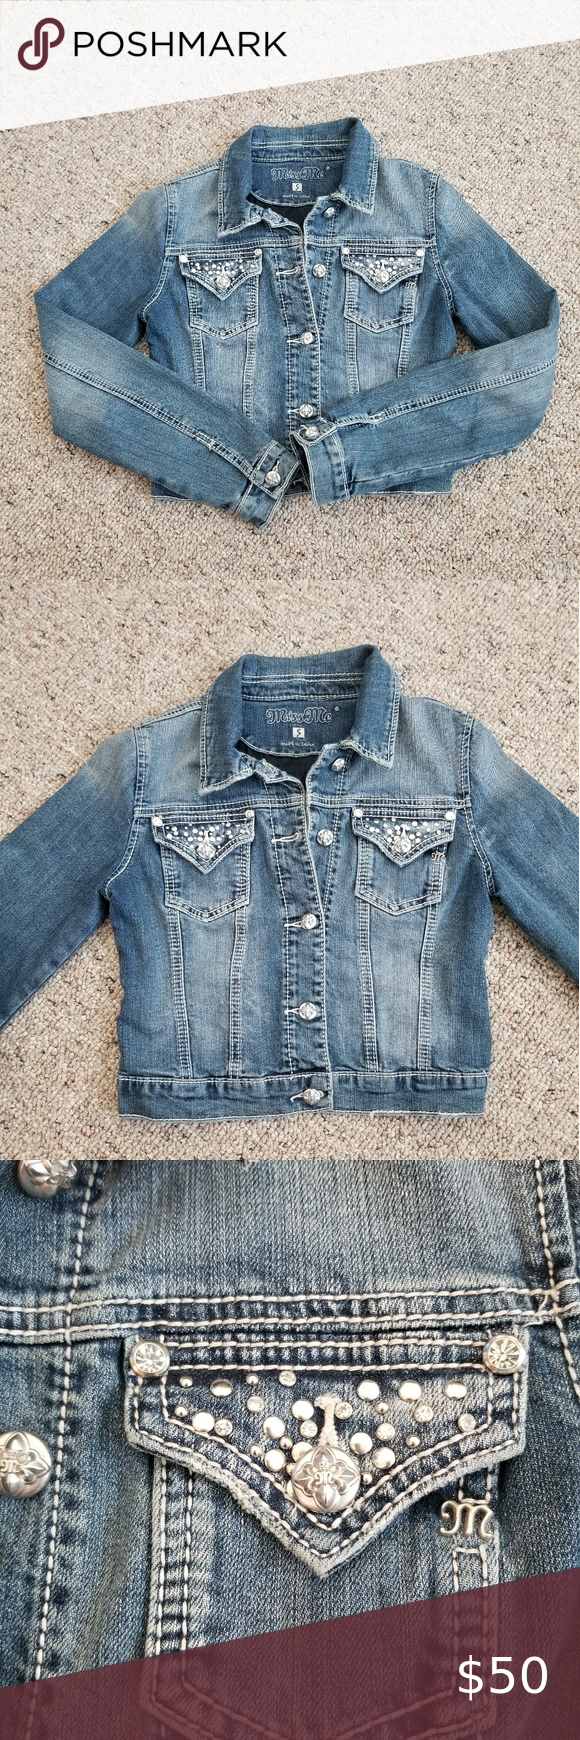 Miss Me Jean Jacket Size Small Excellent Condition No Holes No Rips No Stains This Runs Small Please Denim Jacket Women Coats Jackets Women Miss Me Jeans [ 1740 x 580 Pixel ]